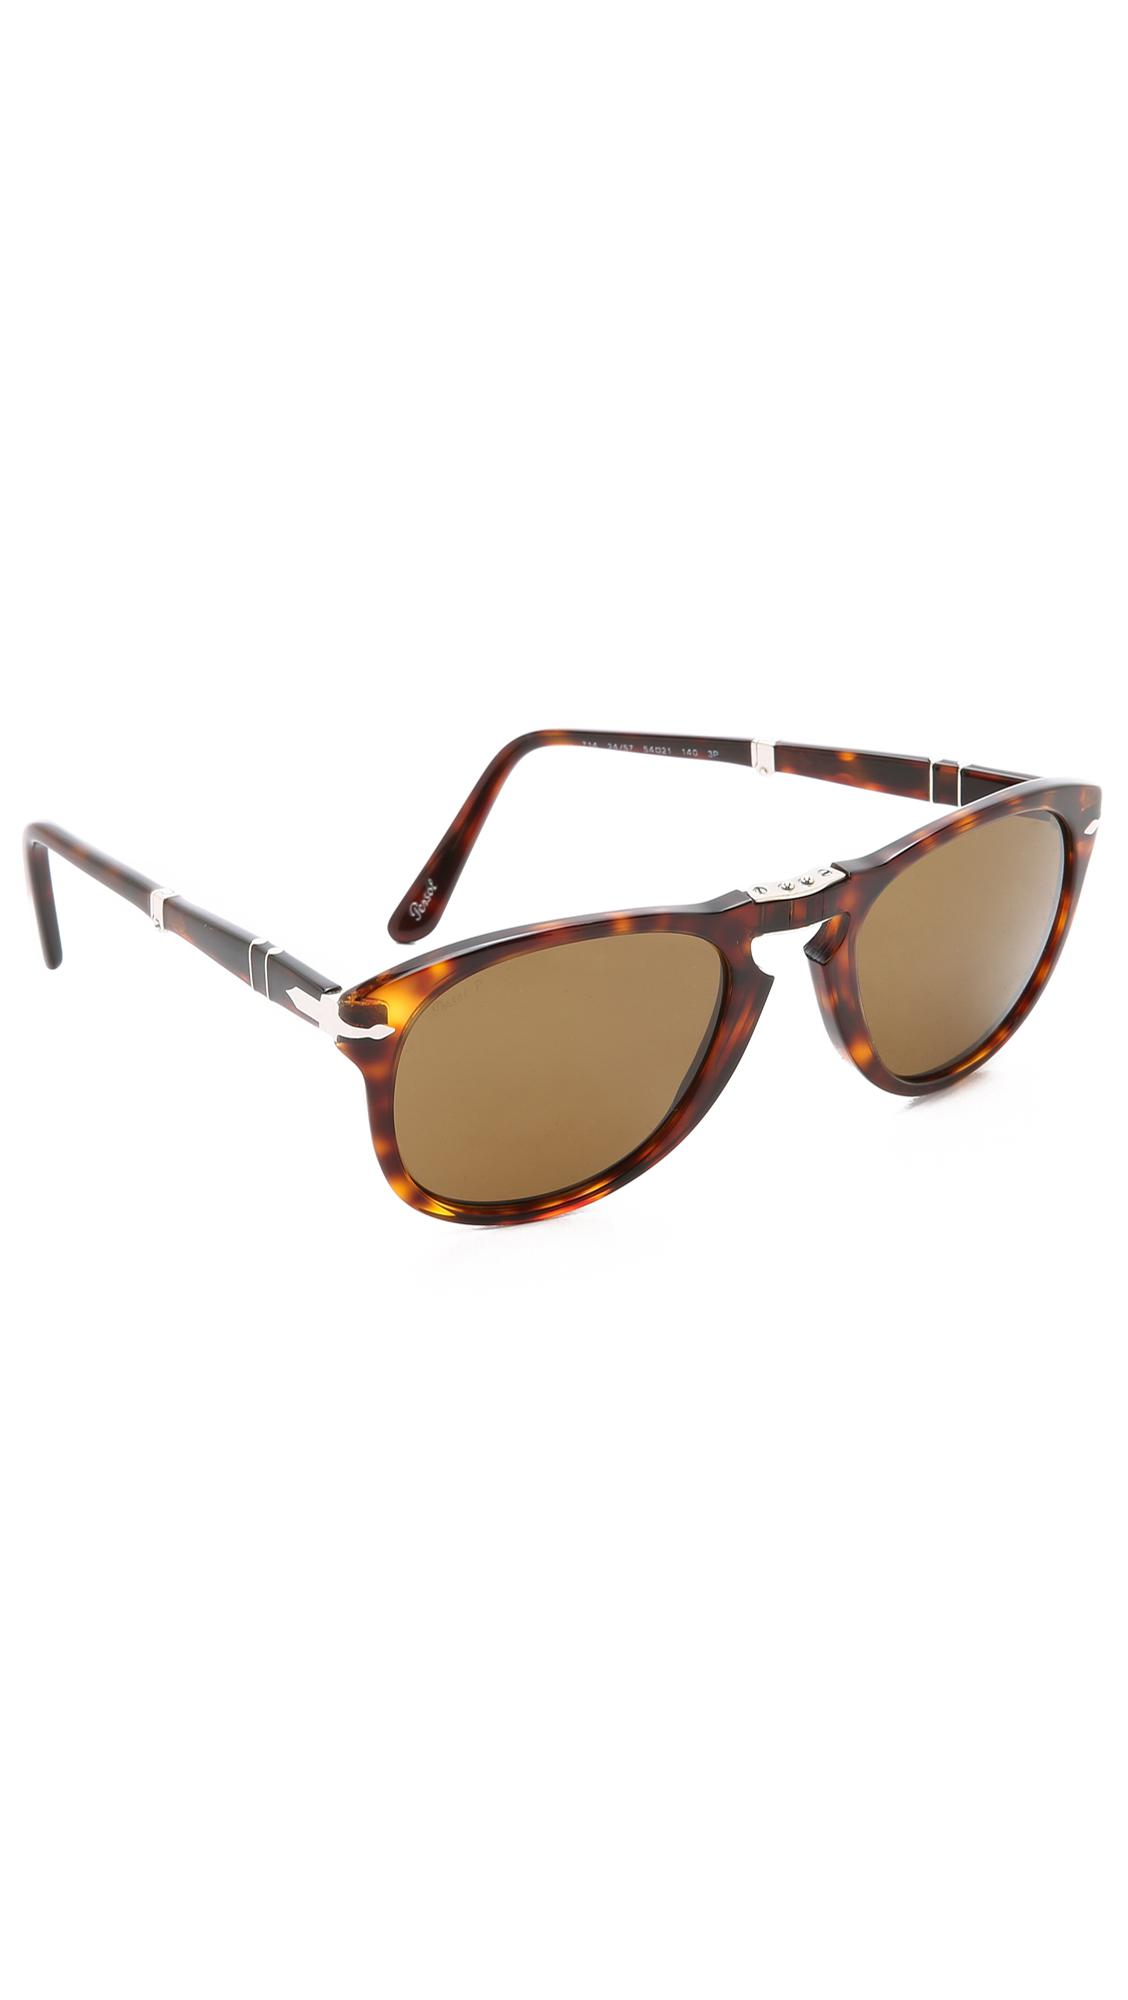 b2979c0a96 Persol Folding Classic Sunglasses in Brown for Men - Lyst